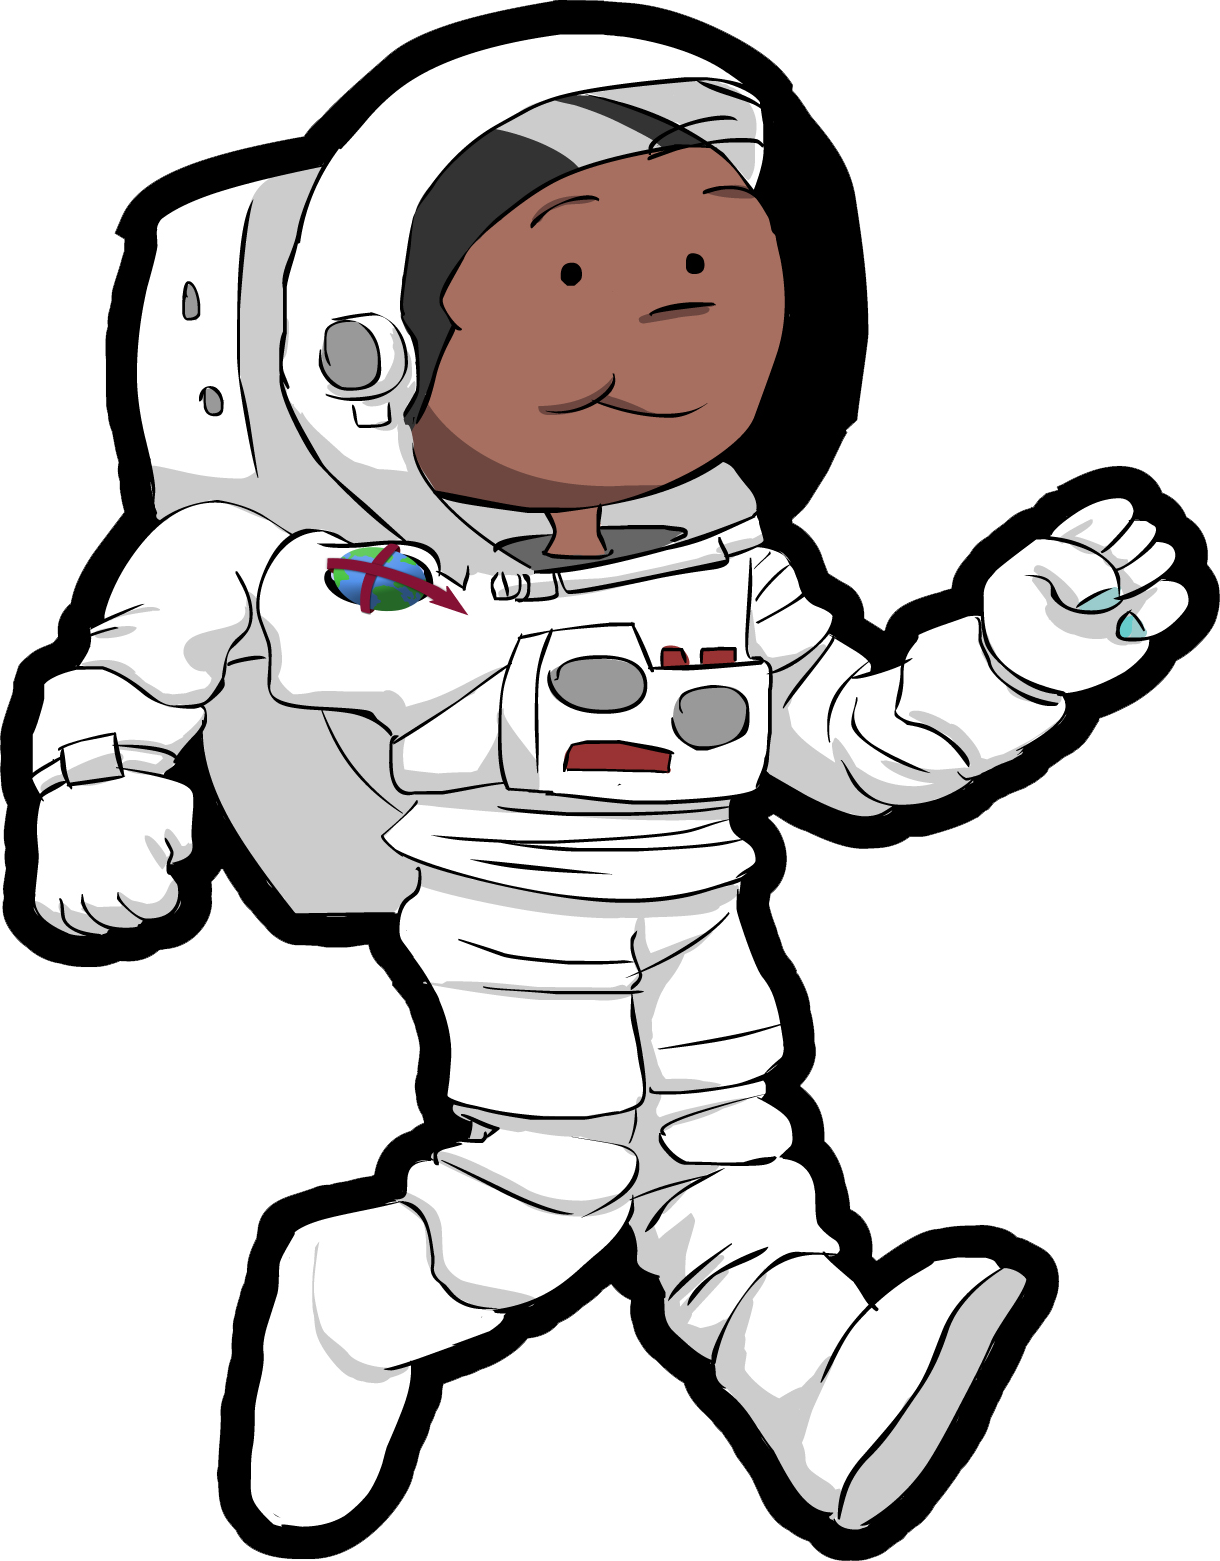 space images charlie the astronaut 24560